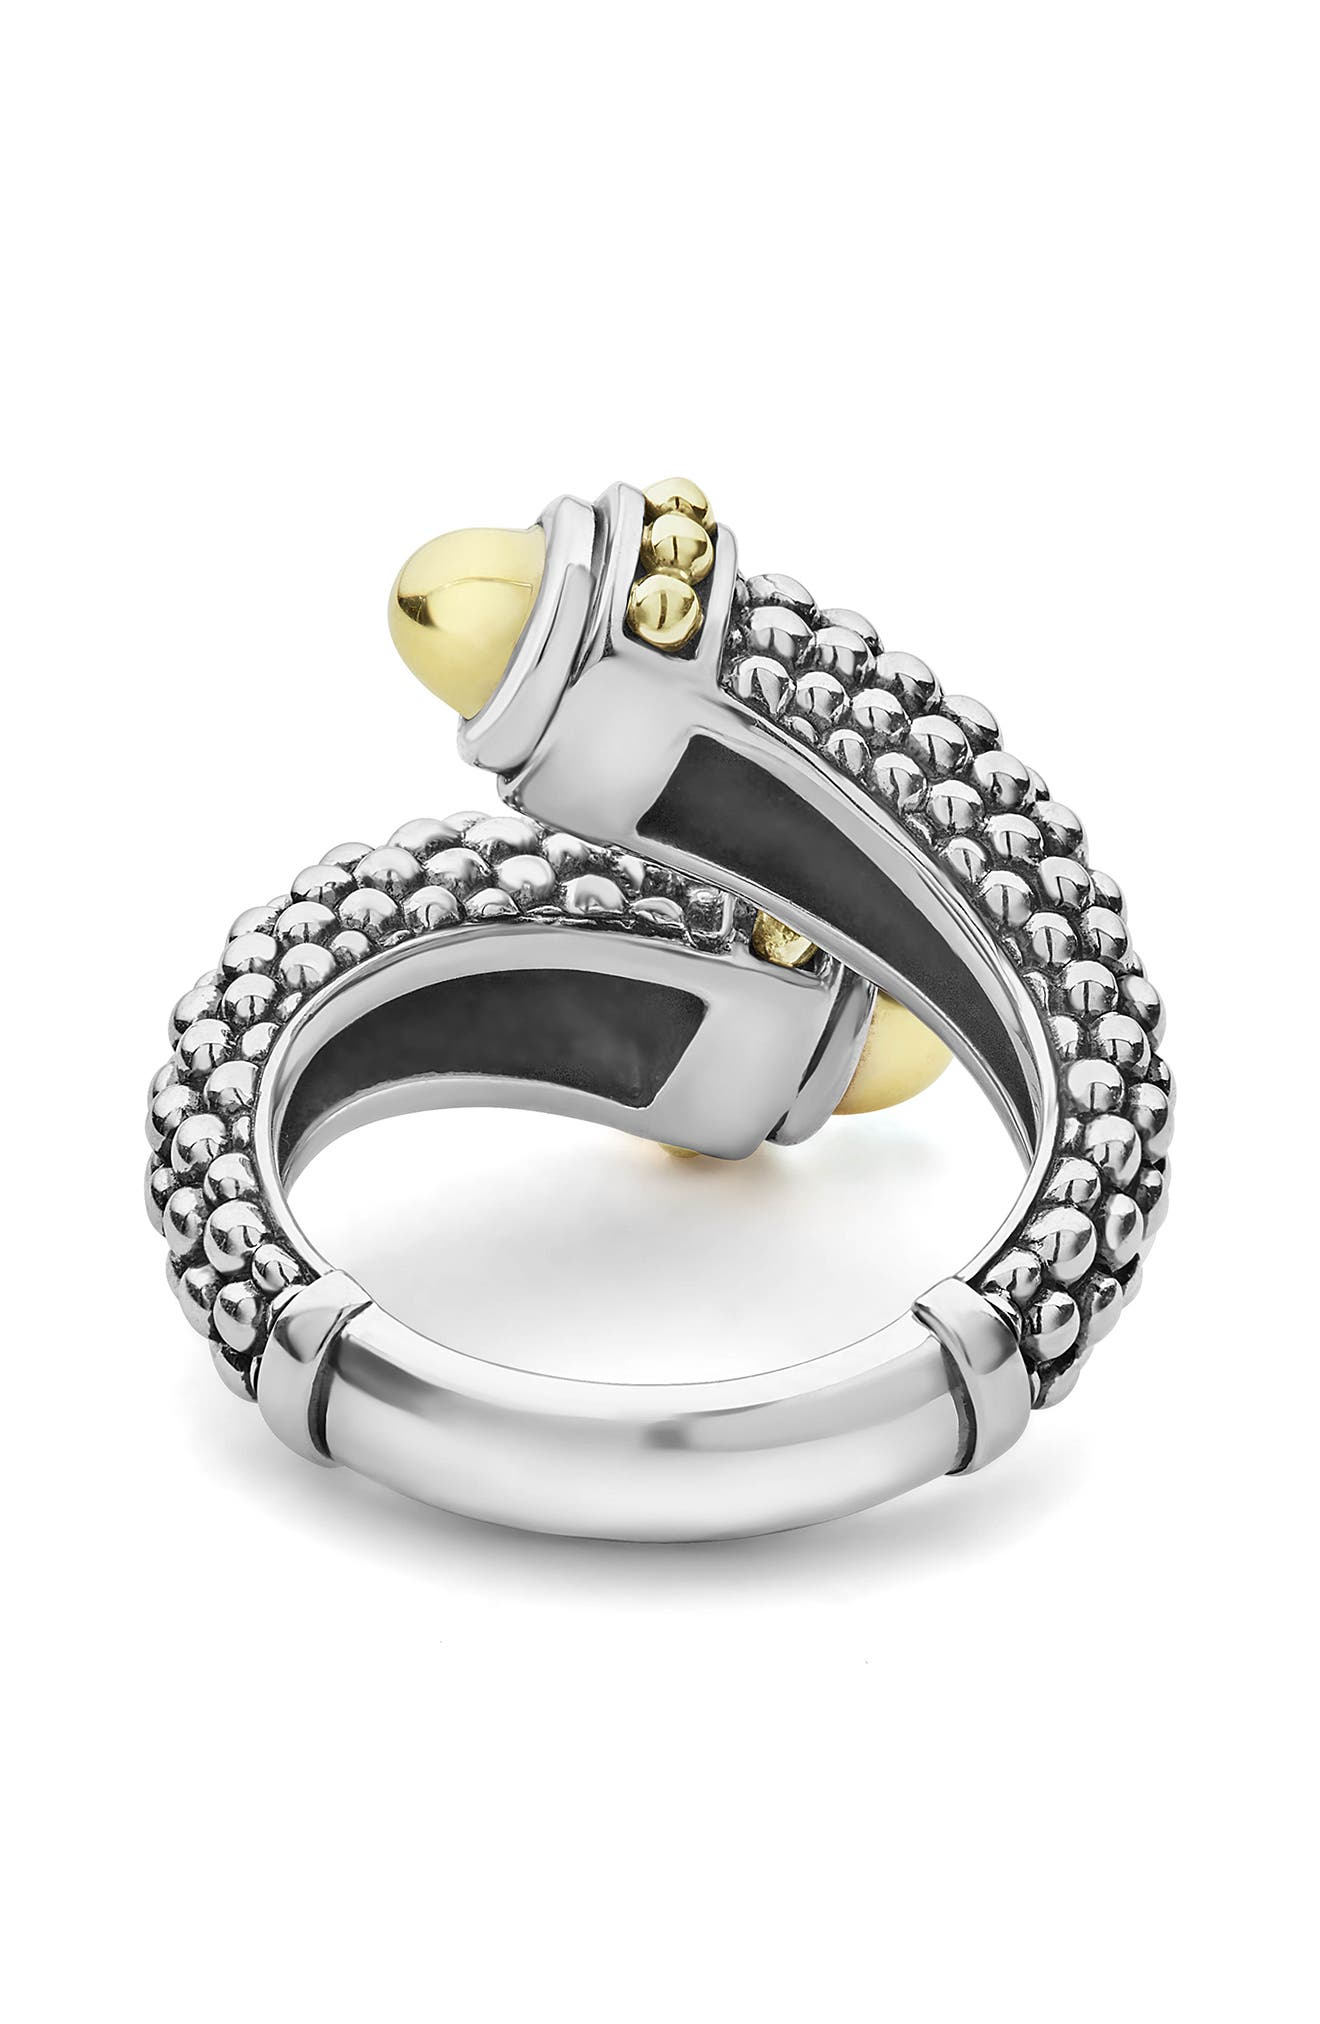 Signature Caviar Gold Cap Crossover Ring,                             Alternate thumbnail 3, color,                             SILVER/ GOLD